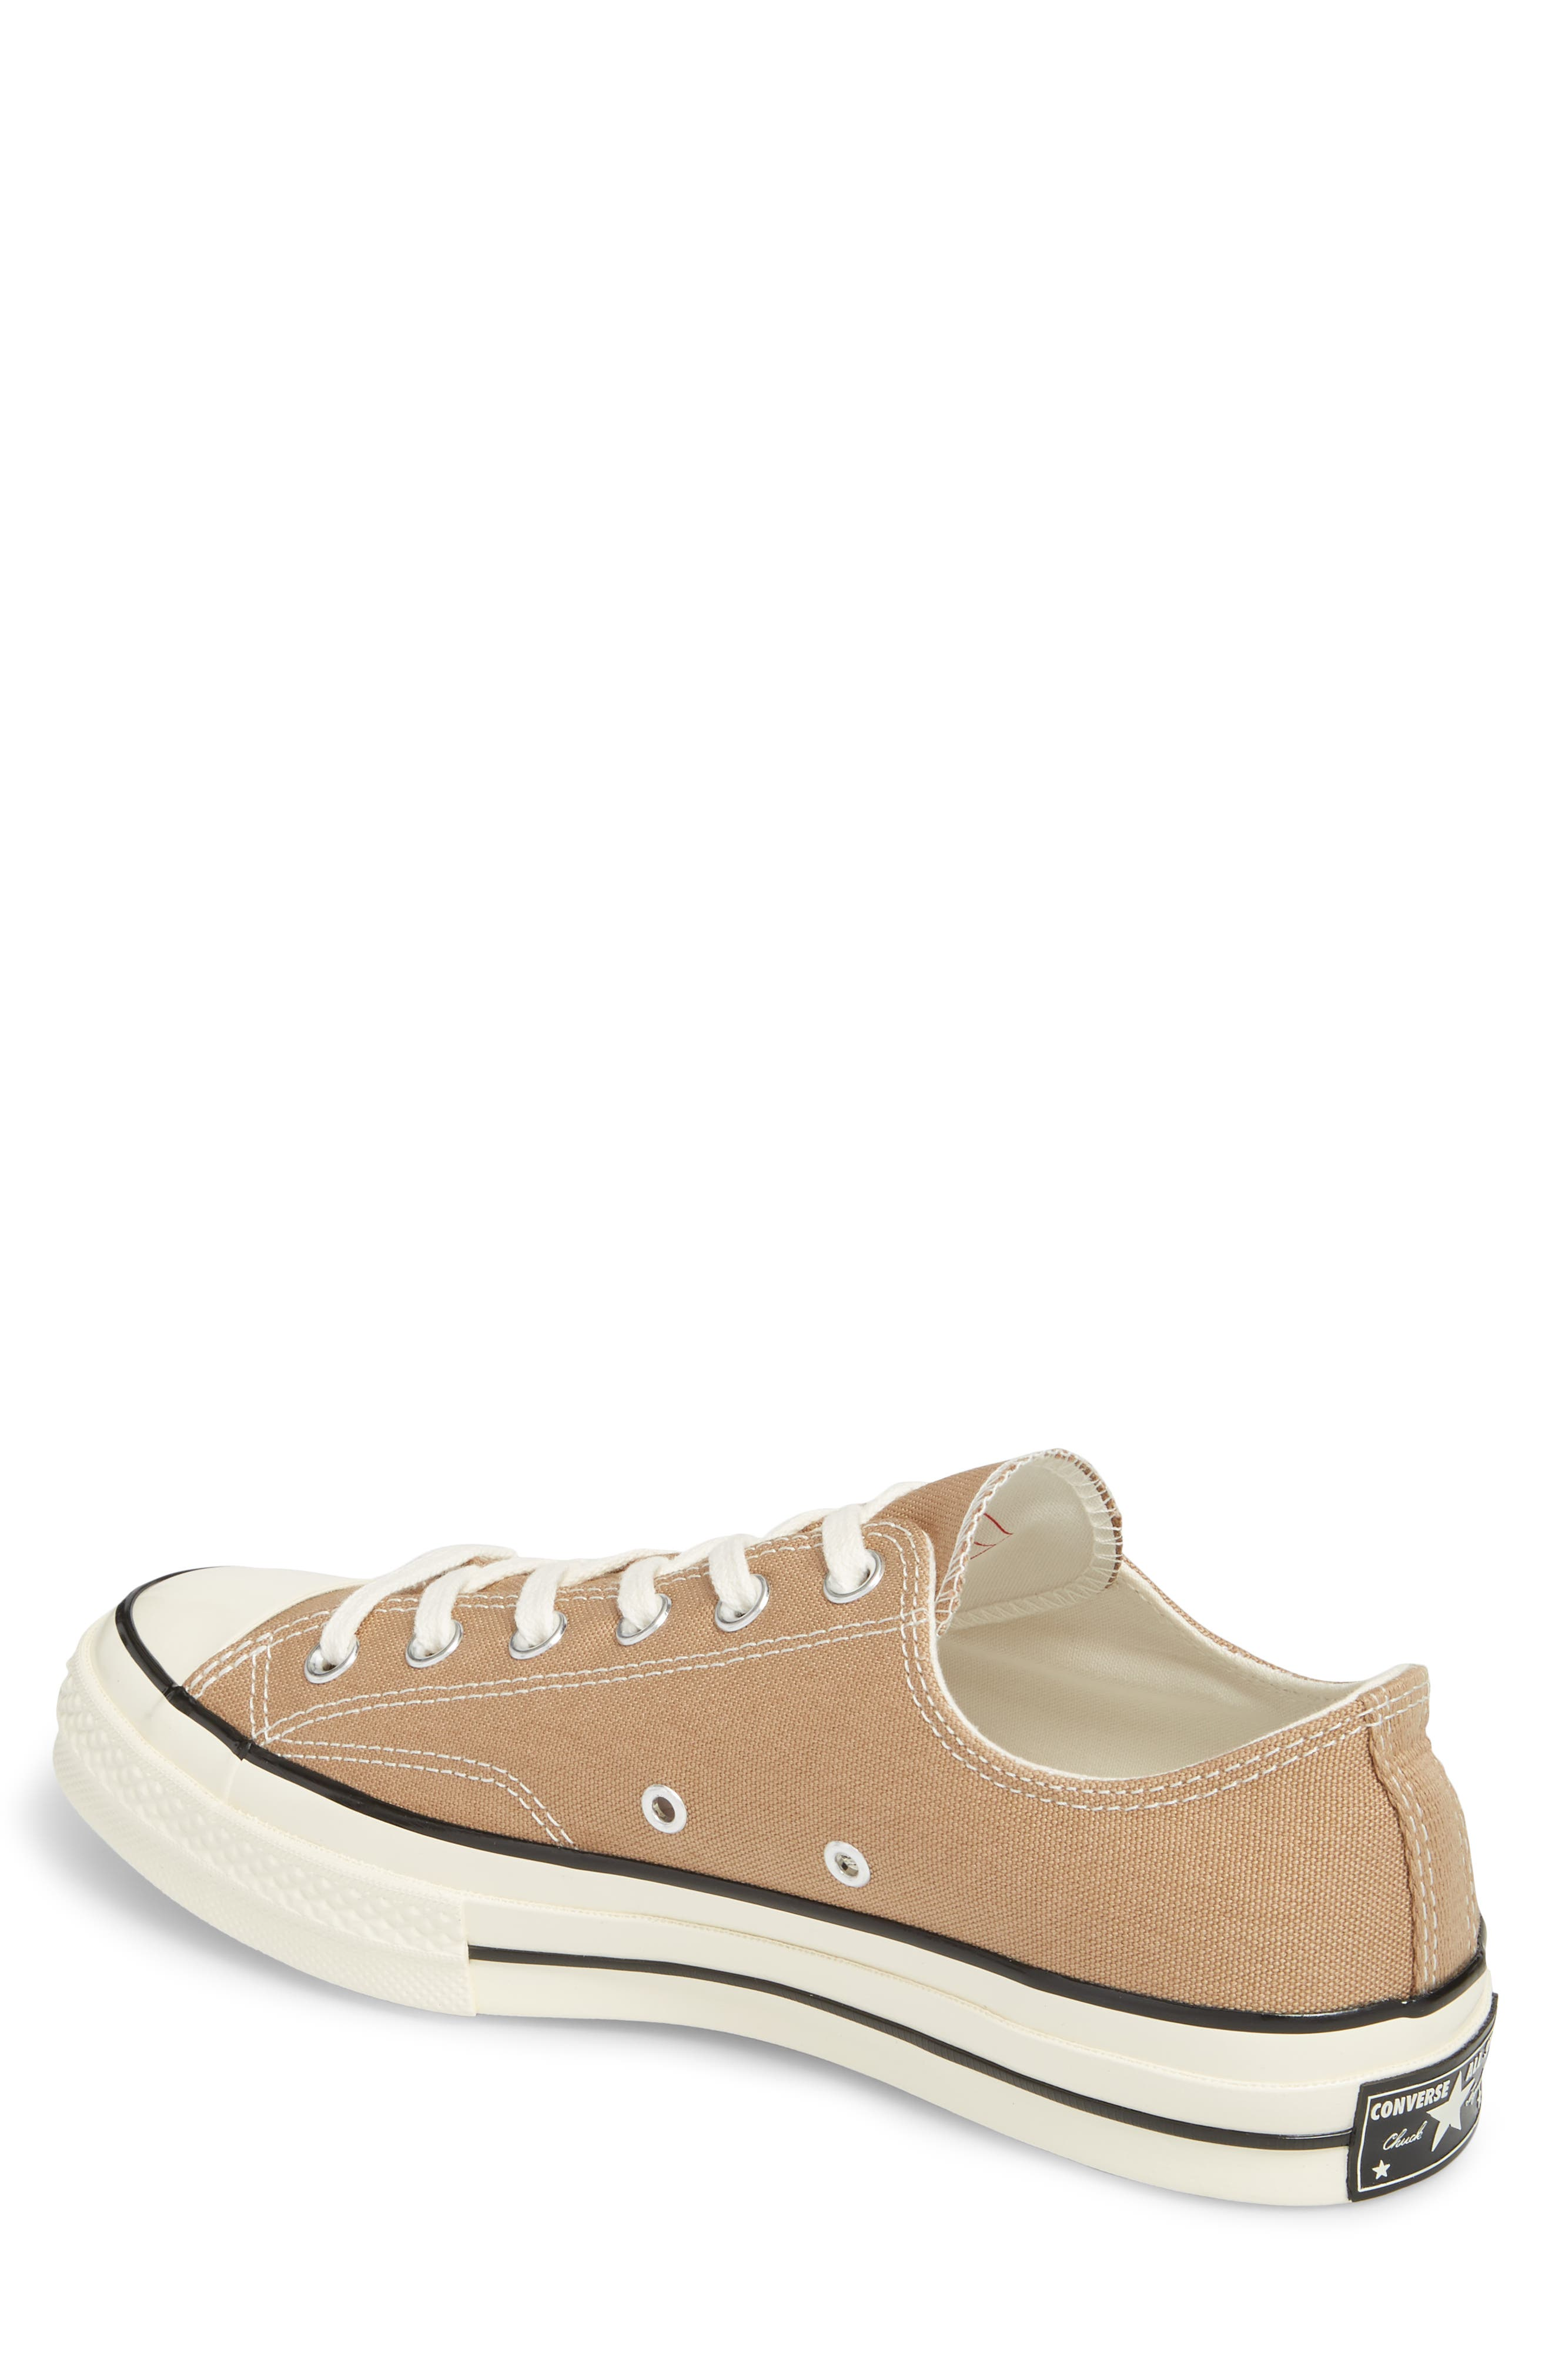 Chuck Taylor<sup>®</sup> All Star<sup>®</sup> 70 Heritage Sneaker,                             Alternate thumbnail 2, color,                             Teak Canvas